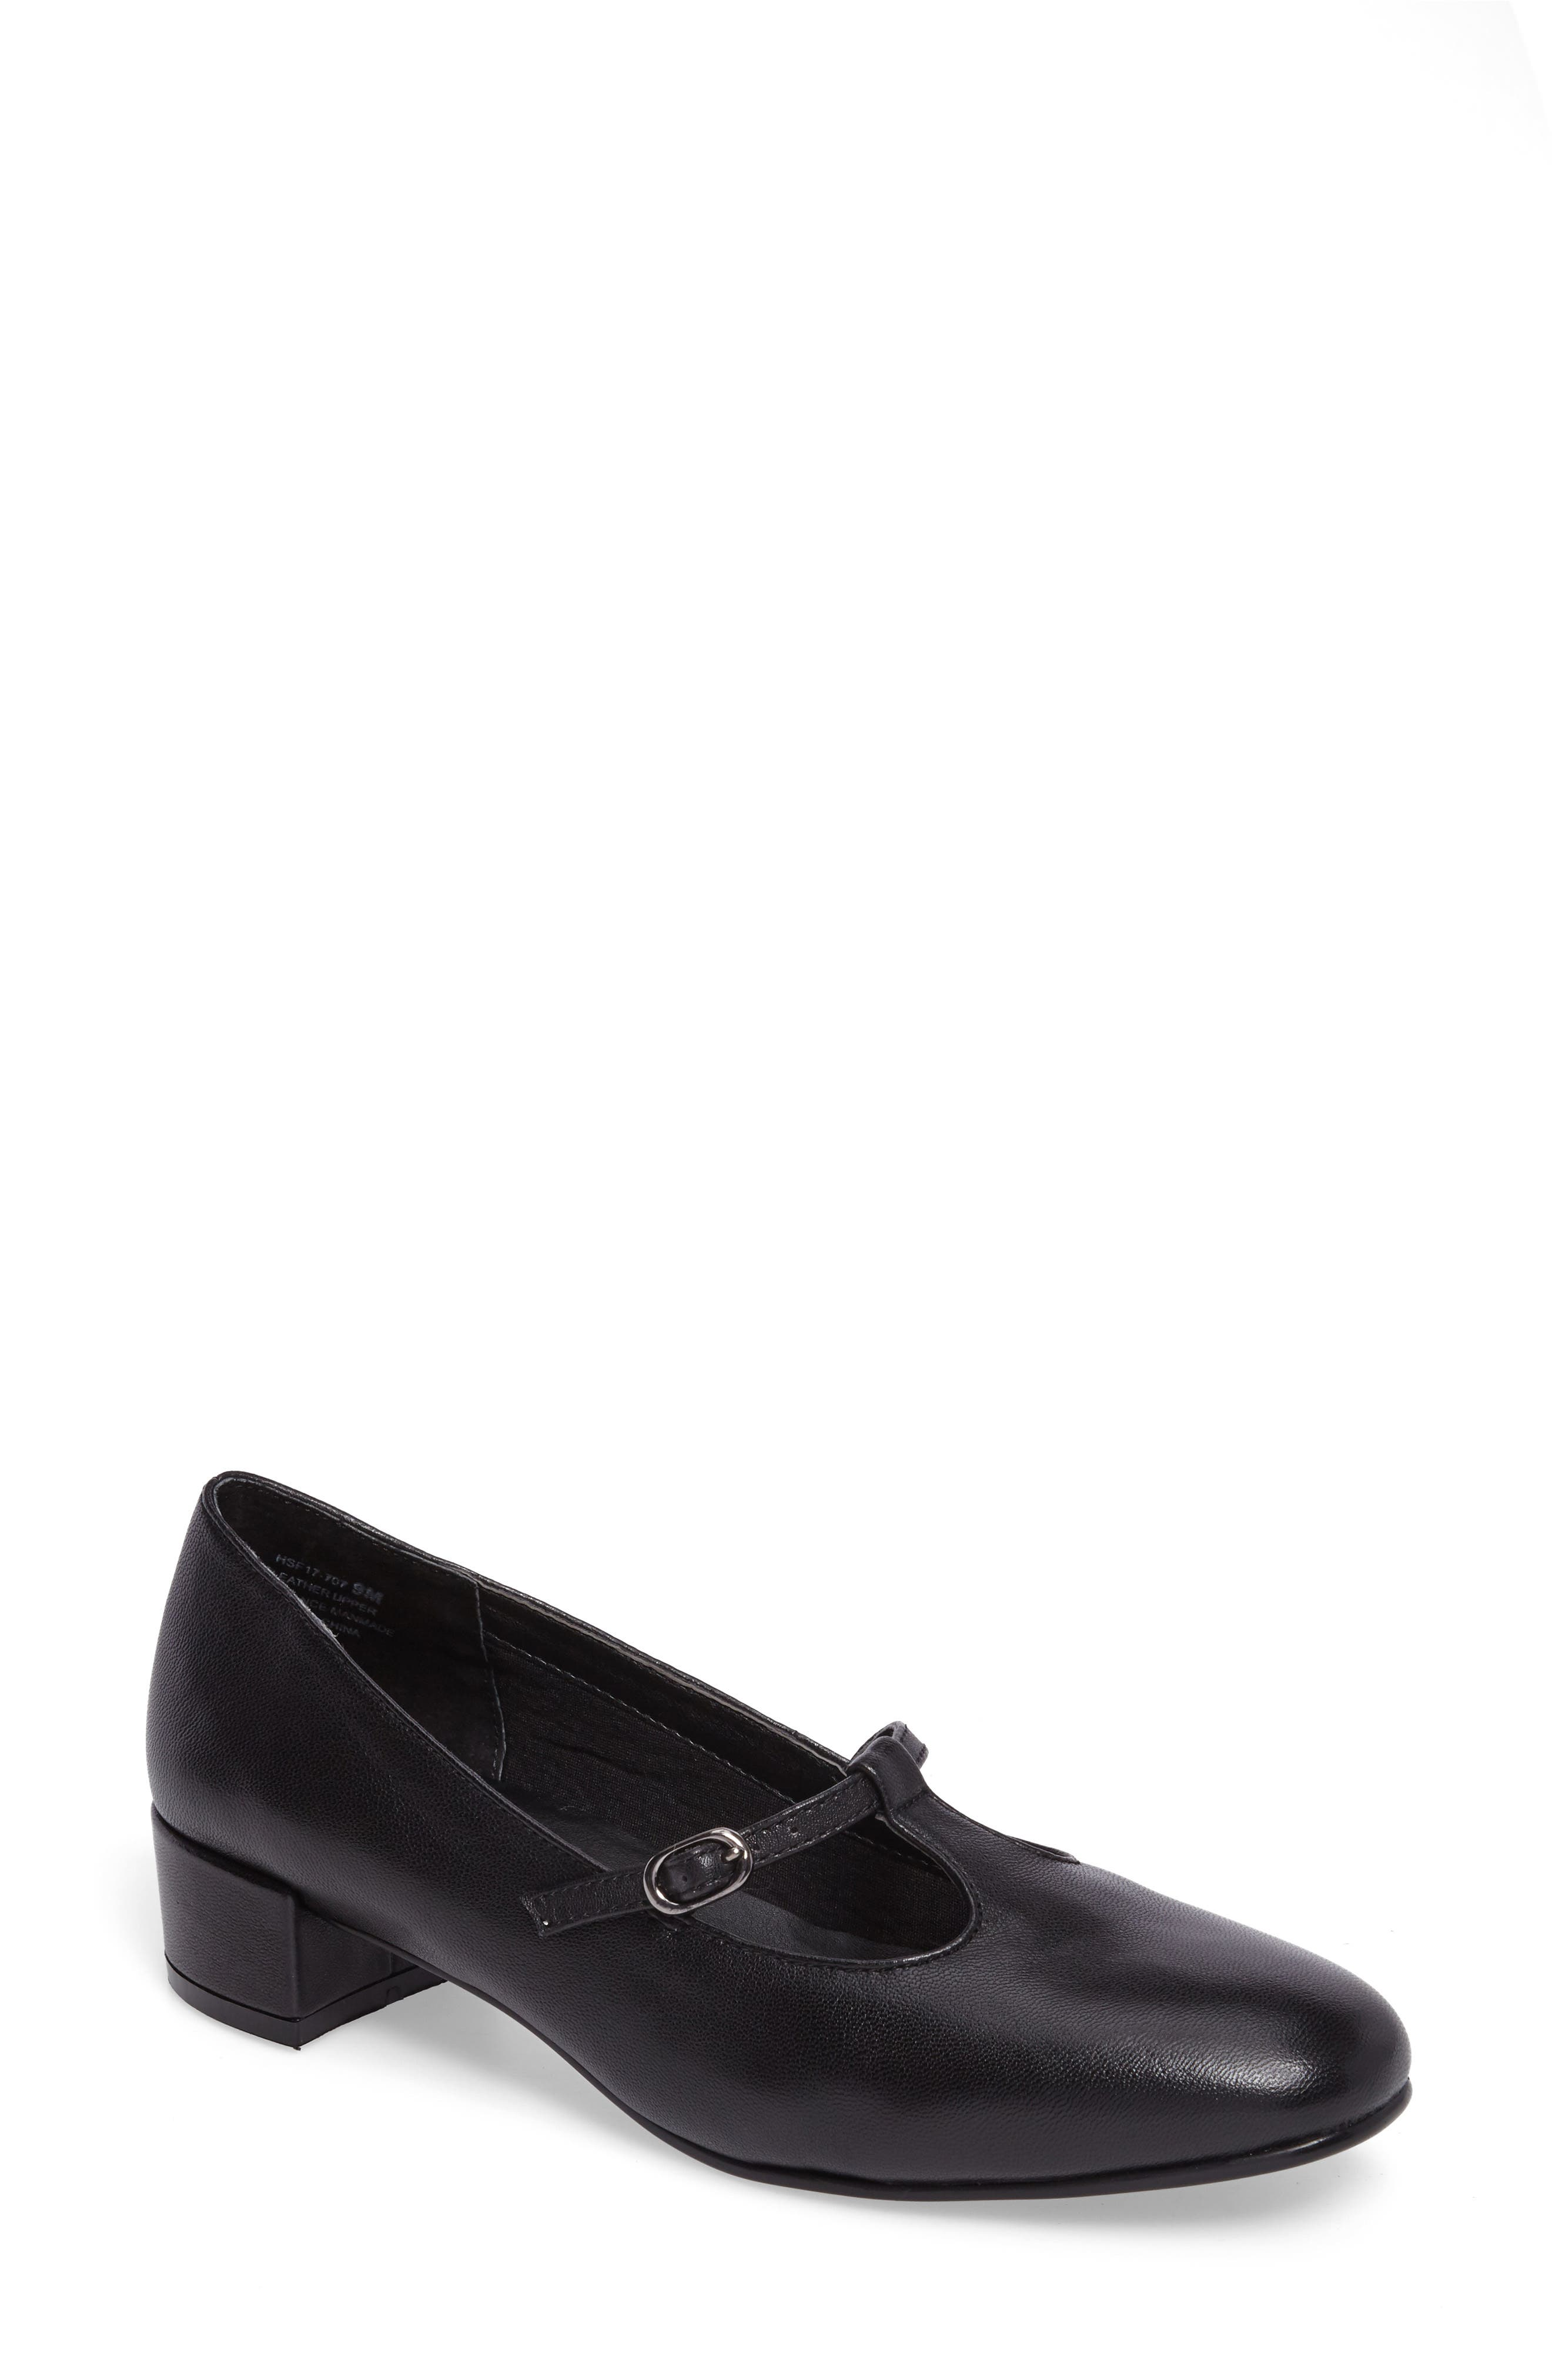 Emma Pump,                         Main,                         color, Black Leather